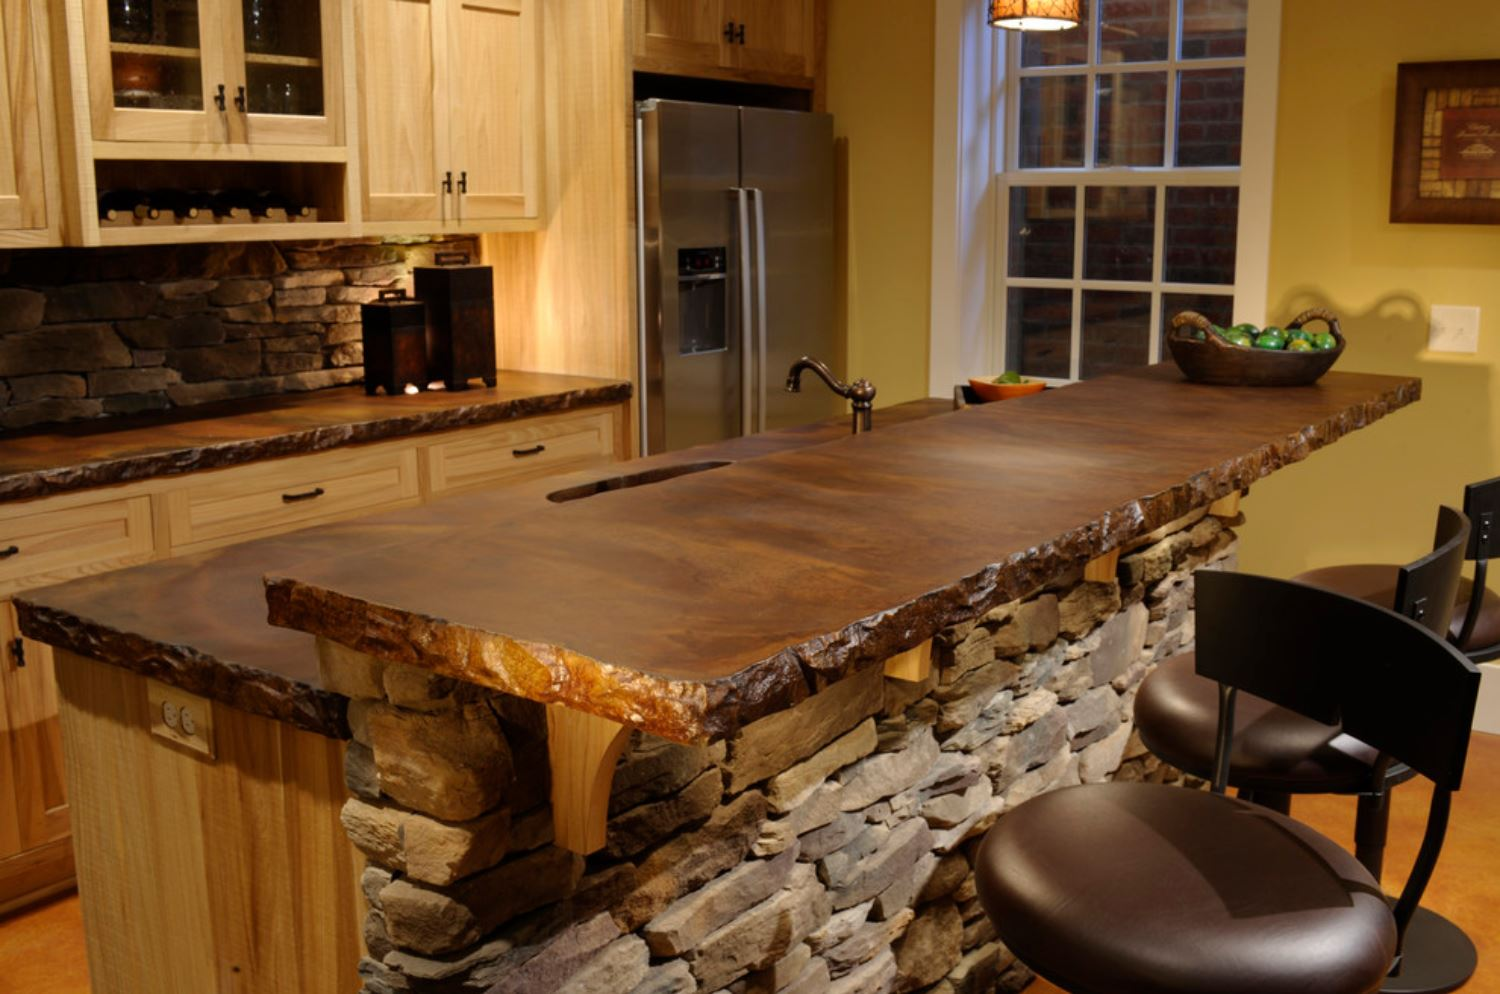 top 10 countertops prices plus pros and cons kitchen countertop ideas custom concrete countertop with rough edges